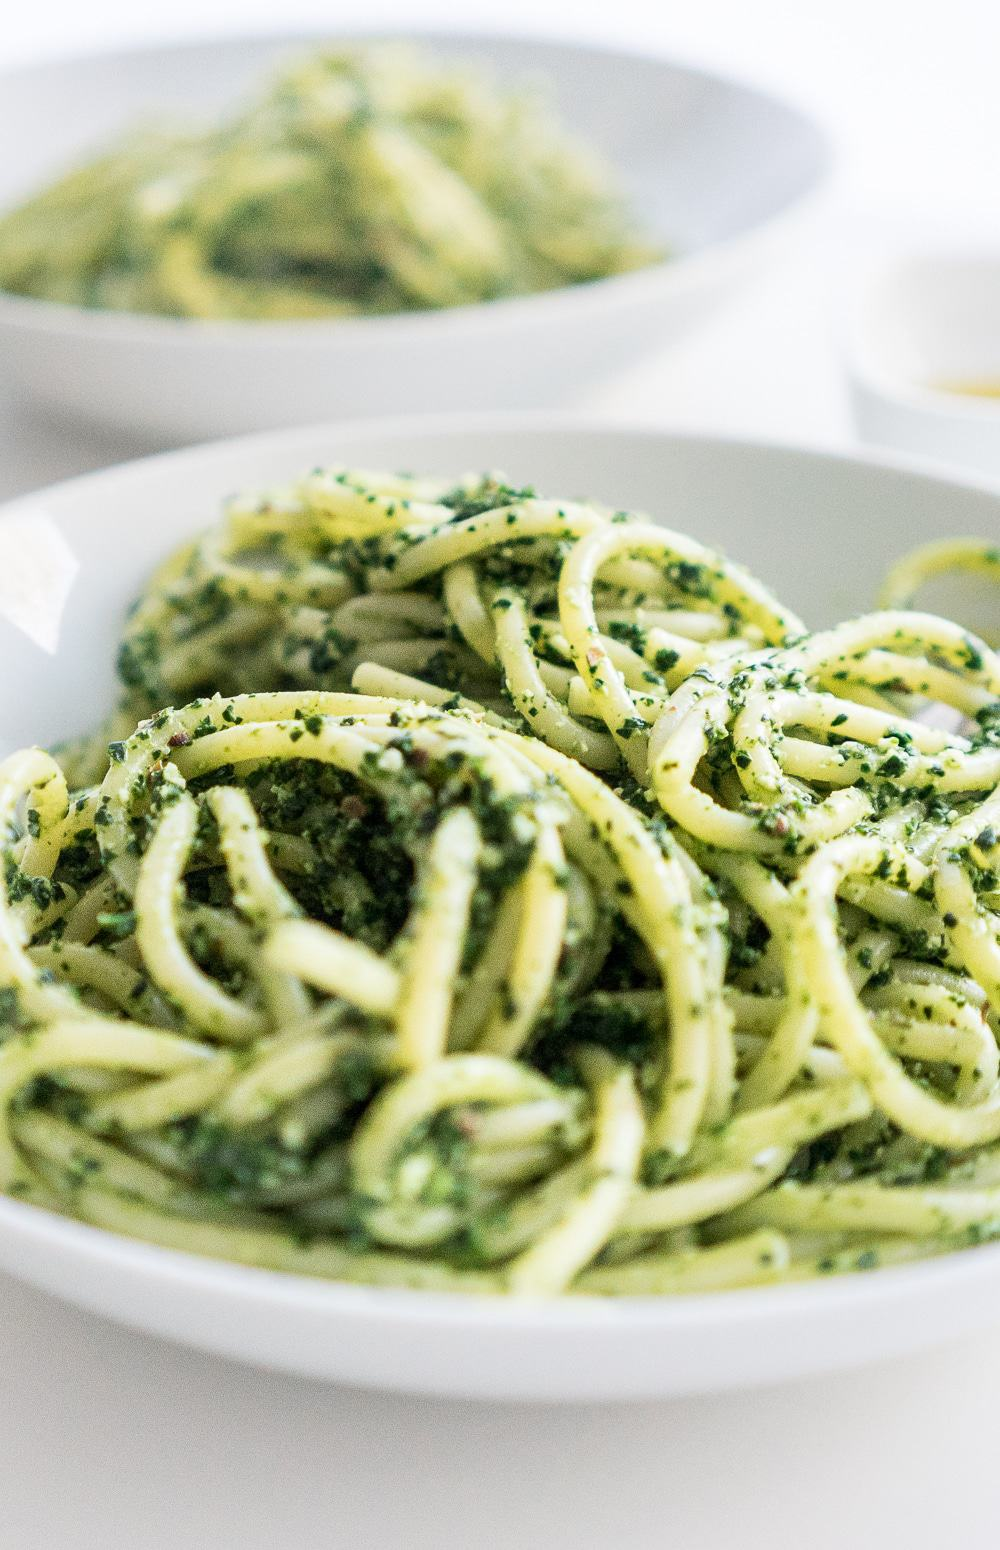 This vegan winter kale pesto recipe is so good, you will want to eat it every day. A truly sensational seasonal pesto recipe that you won't easily forget!